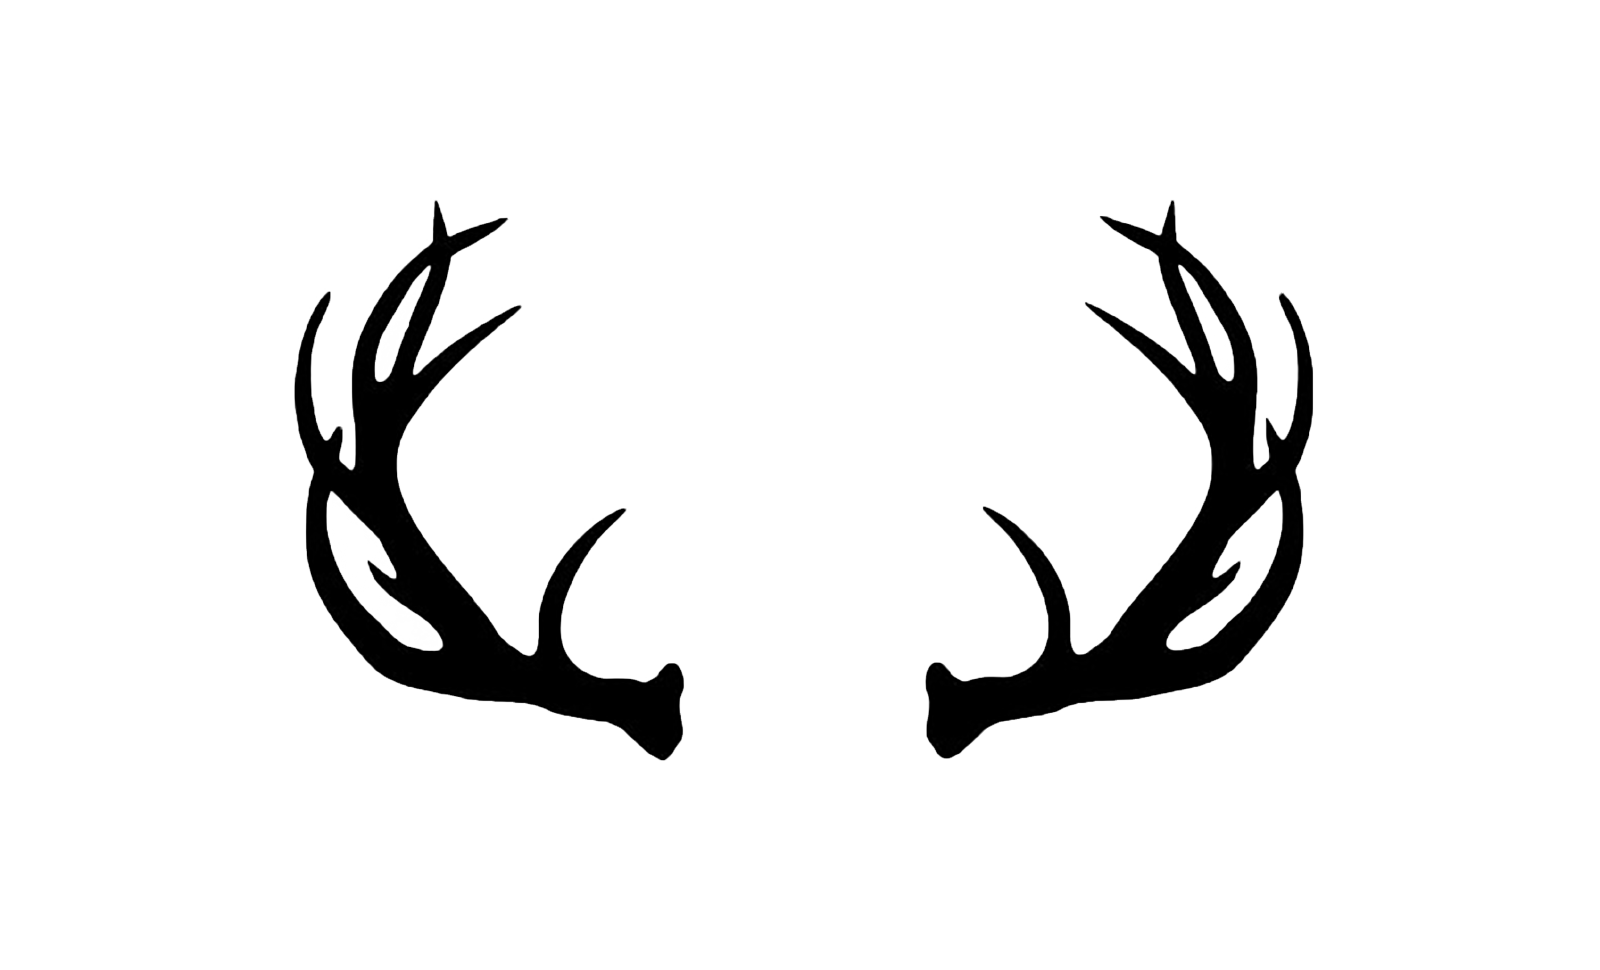 Antler logos. Deer antlers with bow silhouette png graphic stock